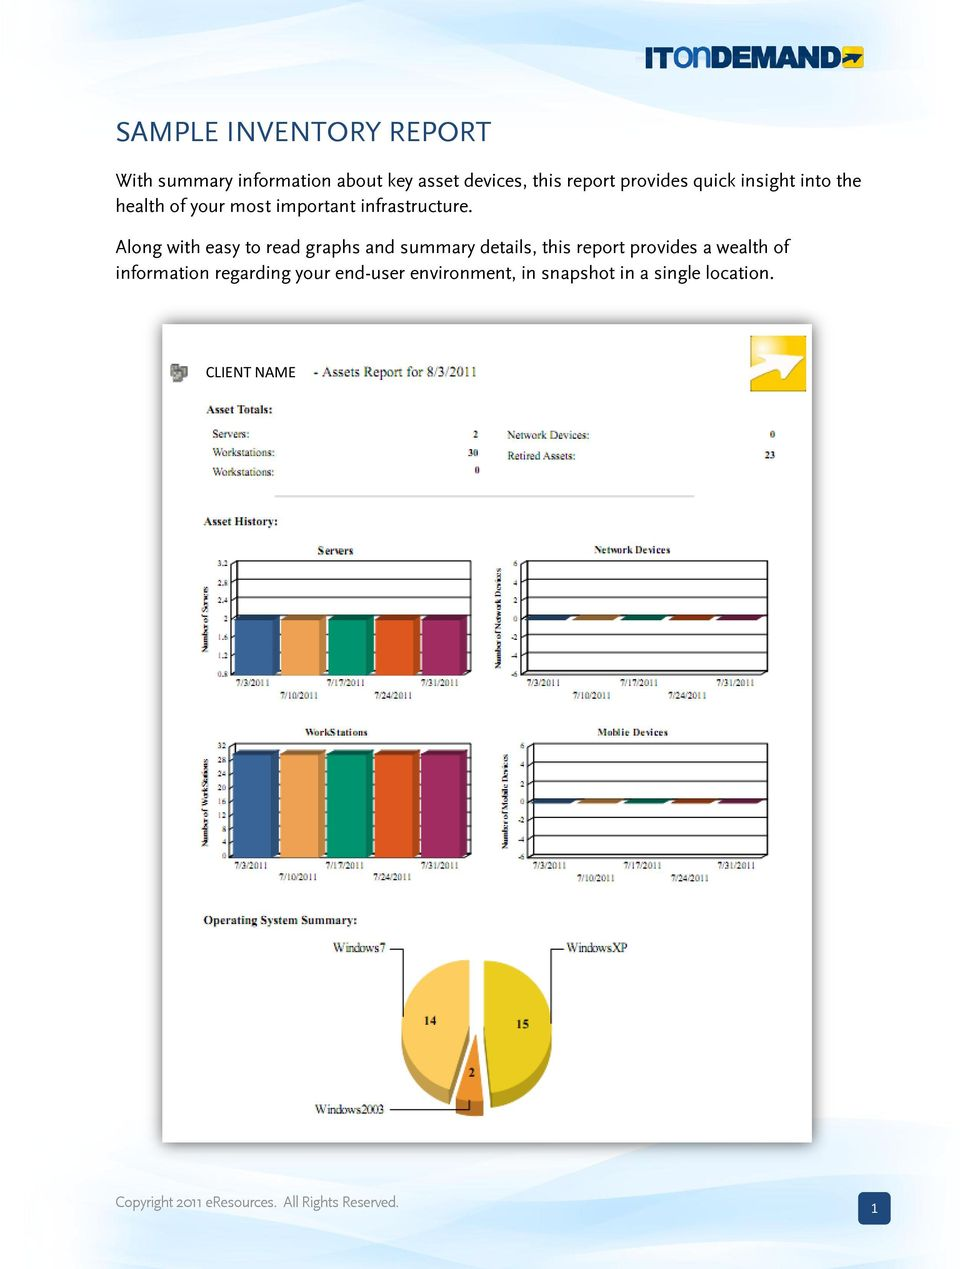 Along with easy to read graphs and summary details, this report provides a wealth of information